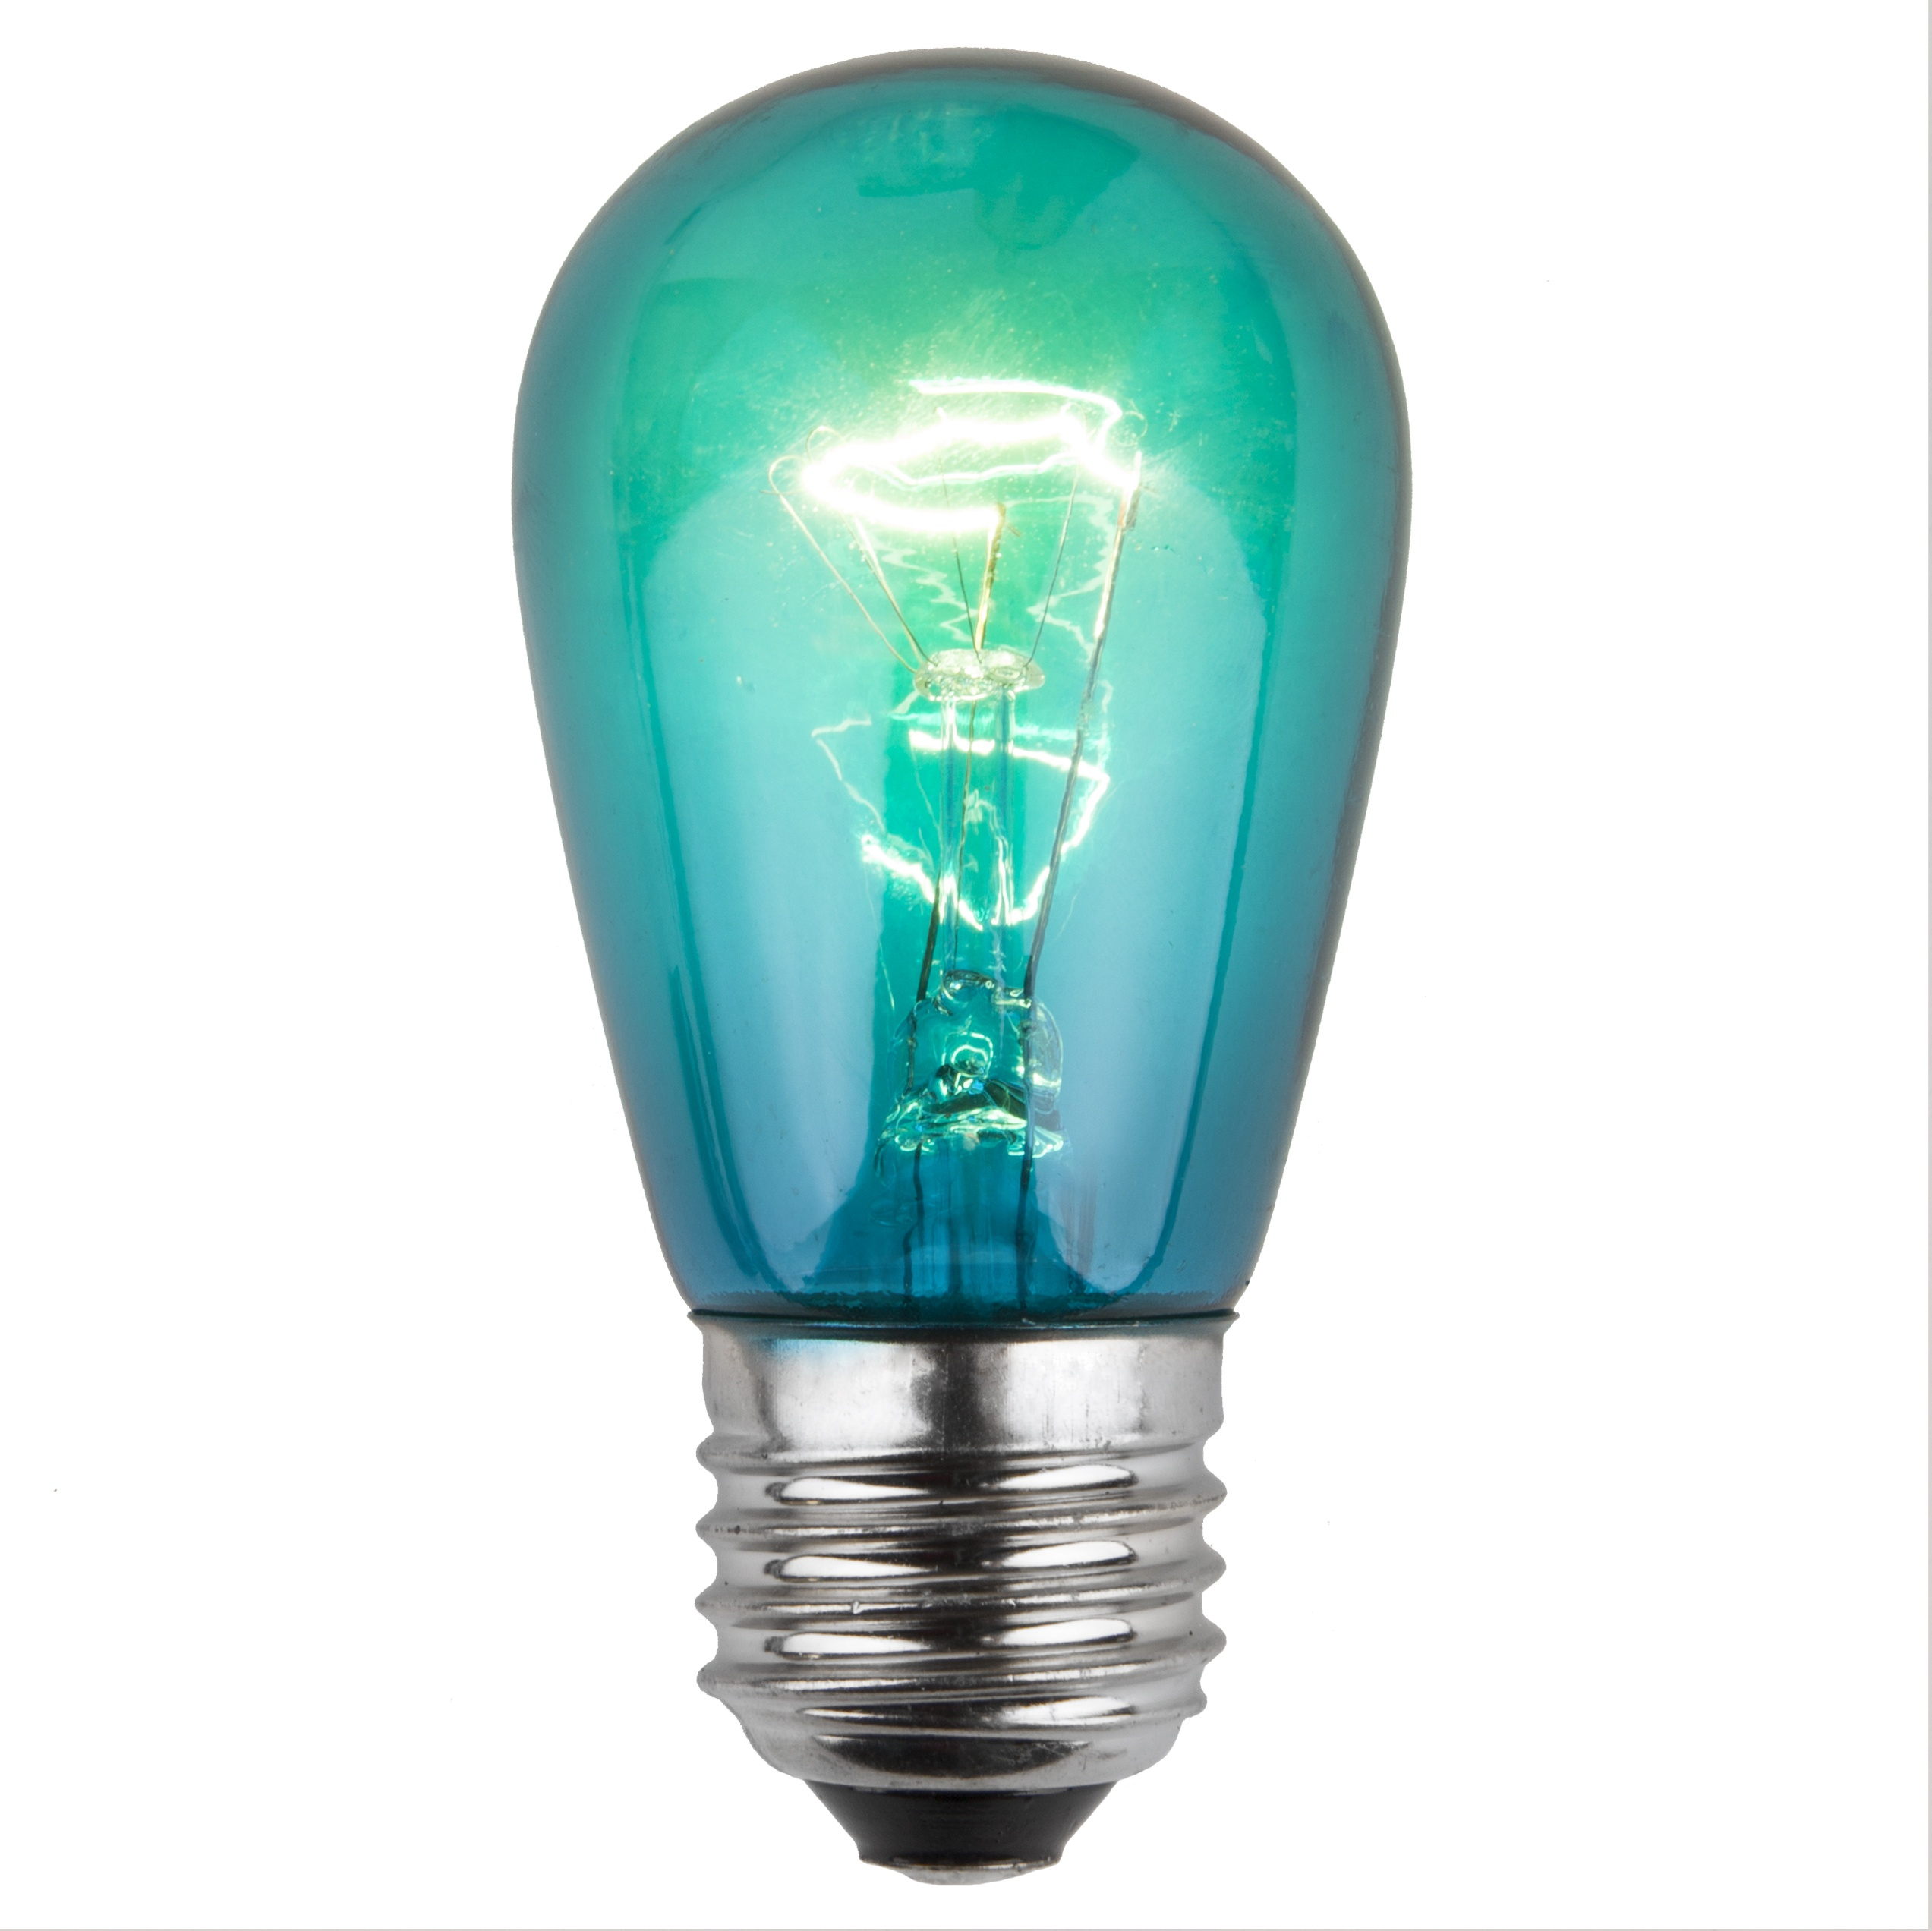 Decorative String Lights S14 Colored Party Bulbs, Teal - Yard Envy